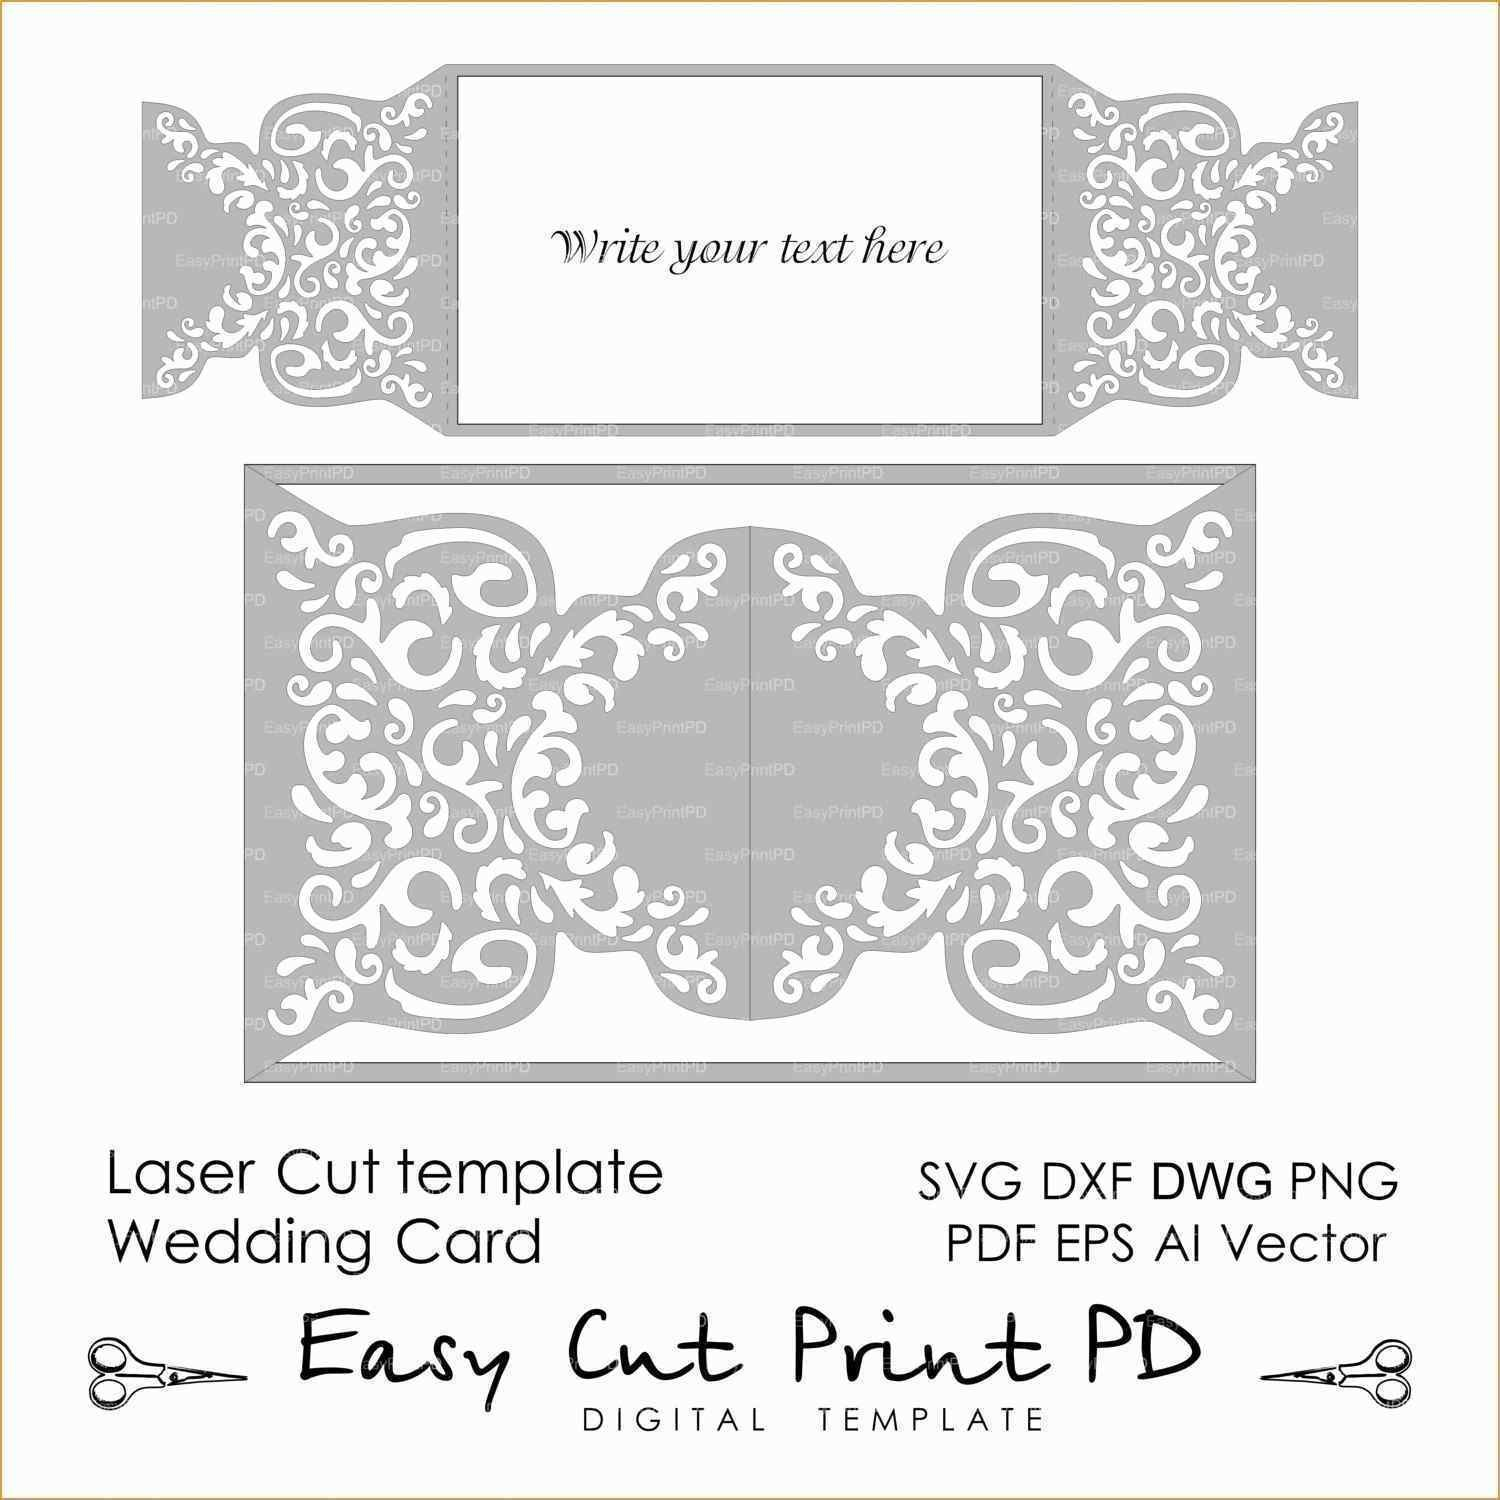 Card Design For Kids Cool Paper Cutting Templates Fresh Die